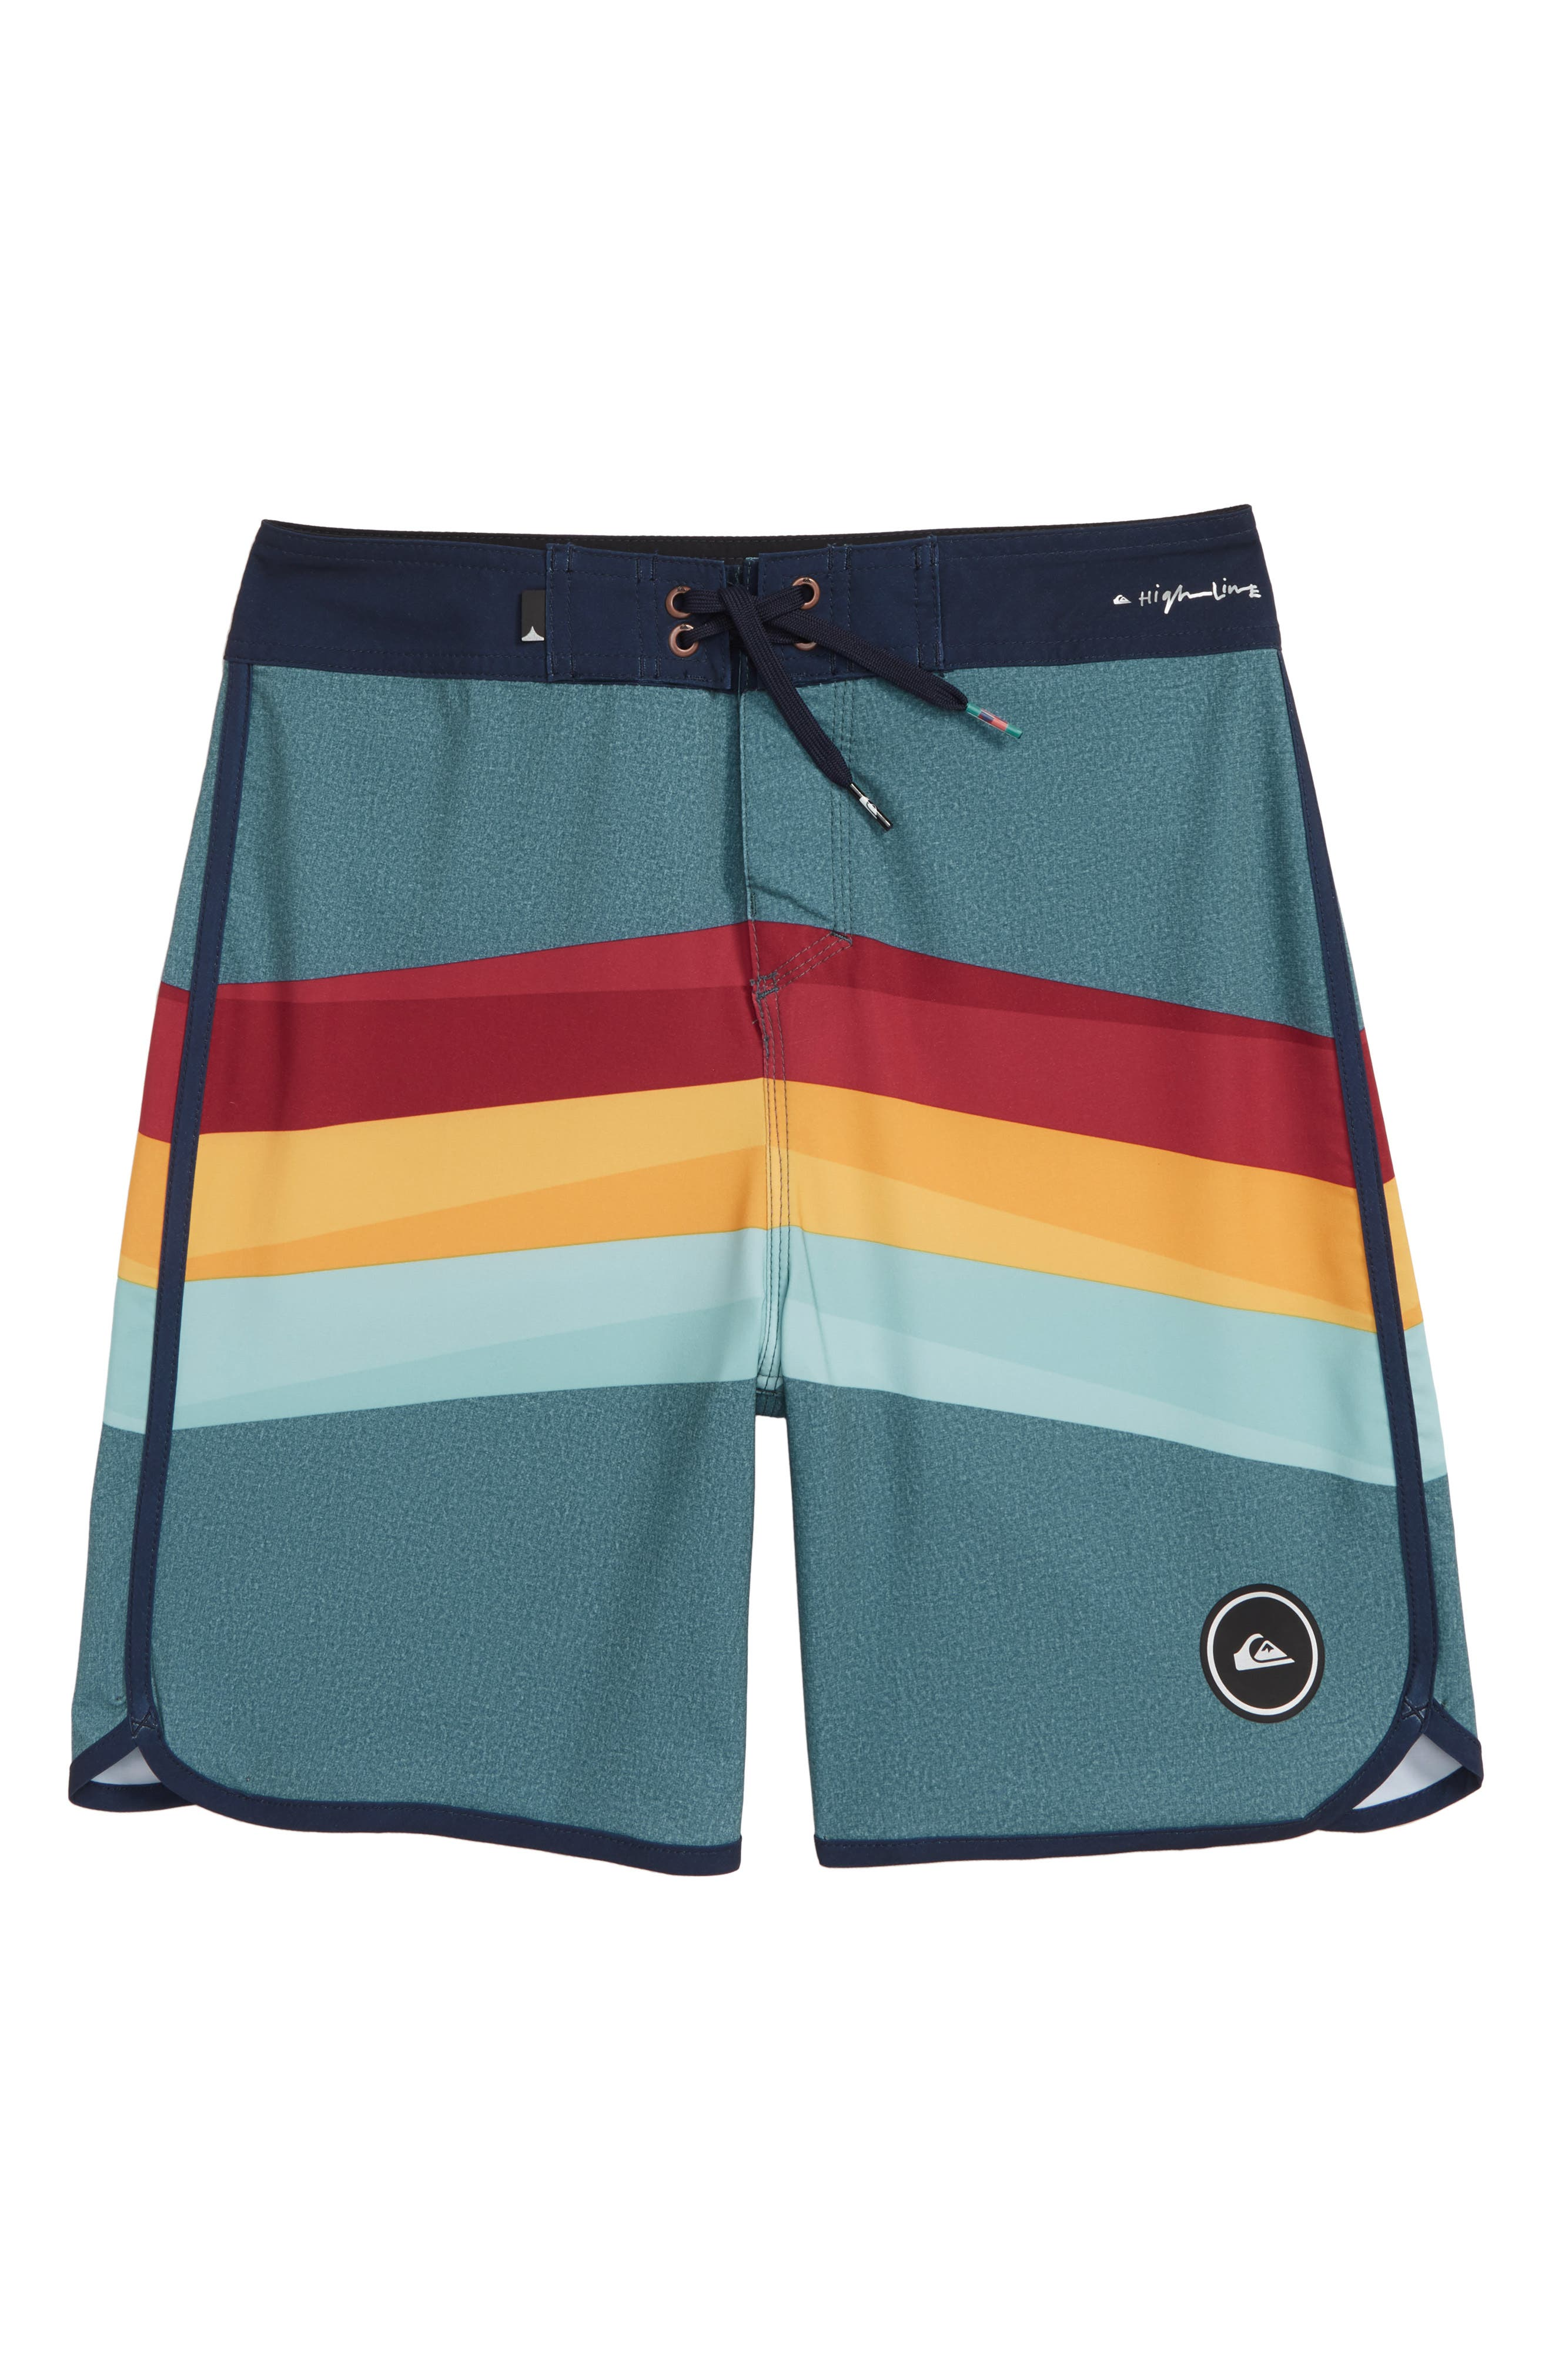 Highline Reverse Board Shorts,                             Main thumbnail 1, color,                             400